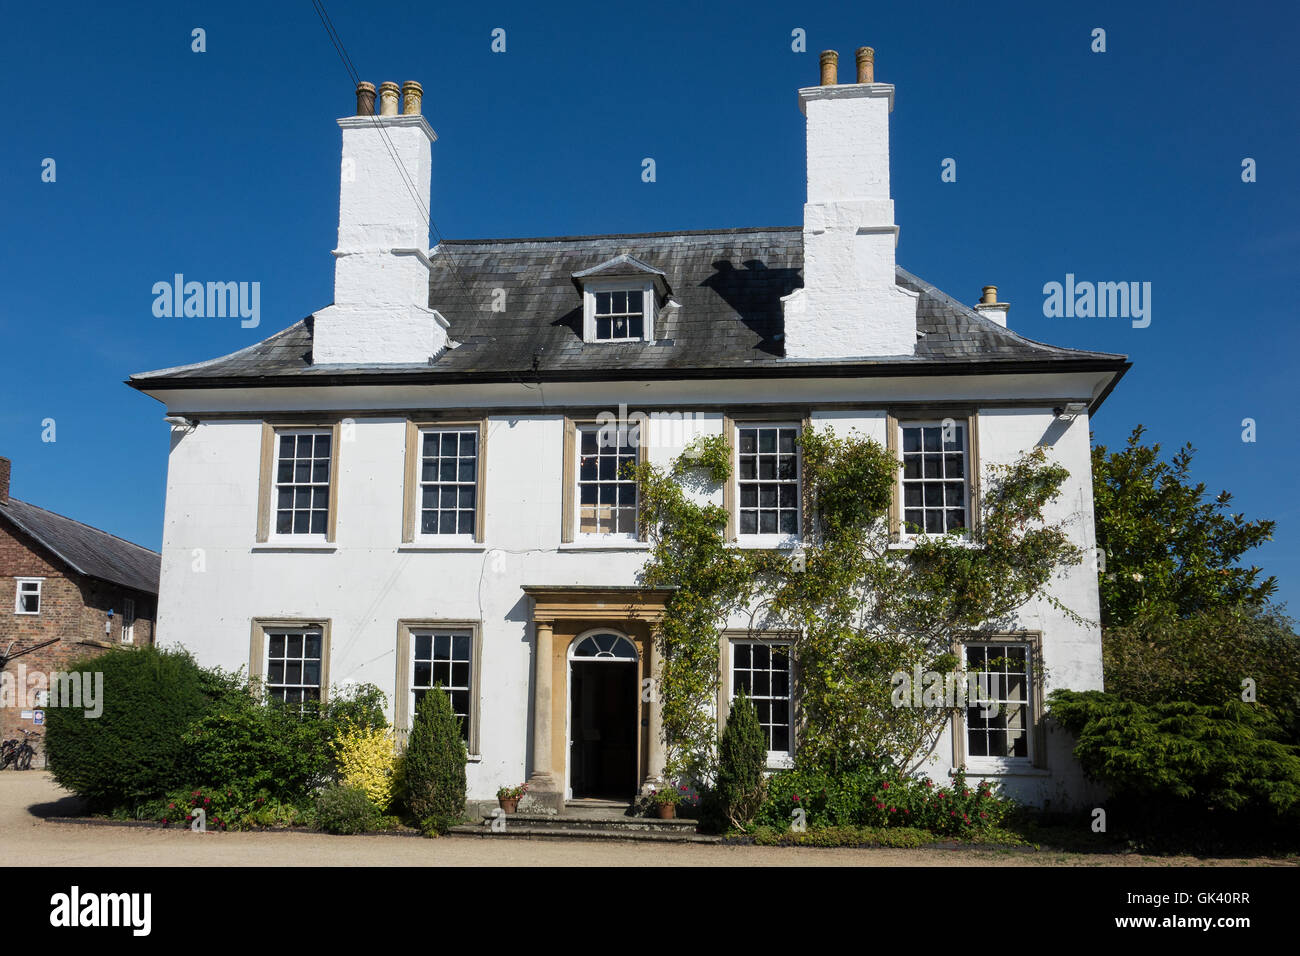 England, Gloucestershire, Berkeley, Dr. Jenner's house - Stock Image